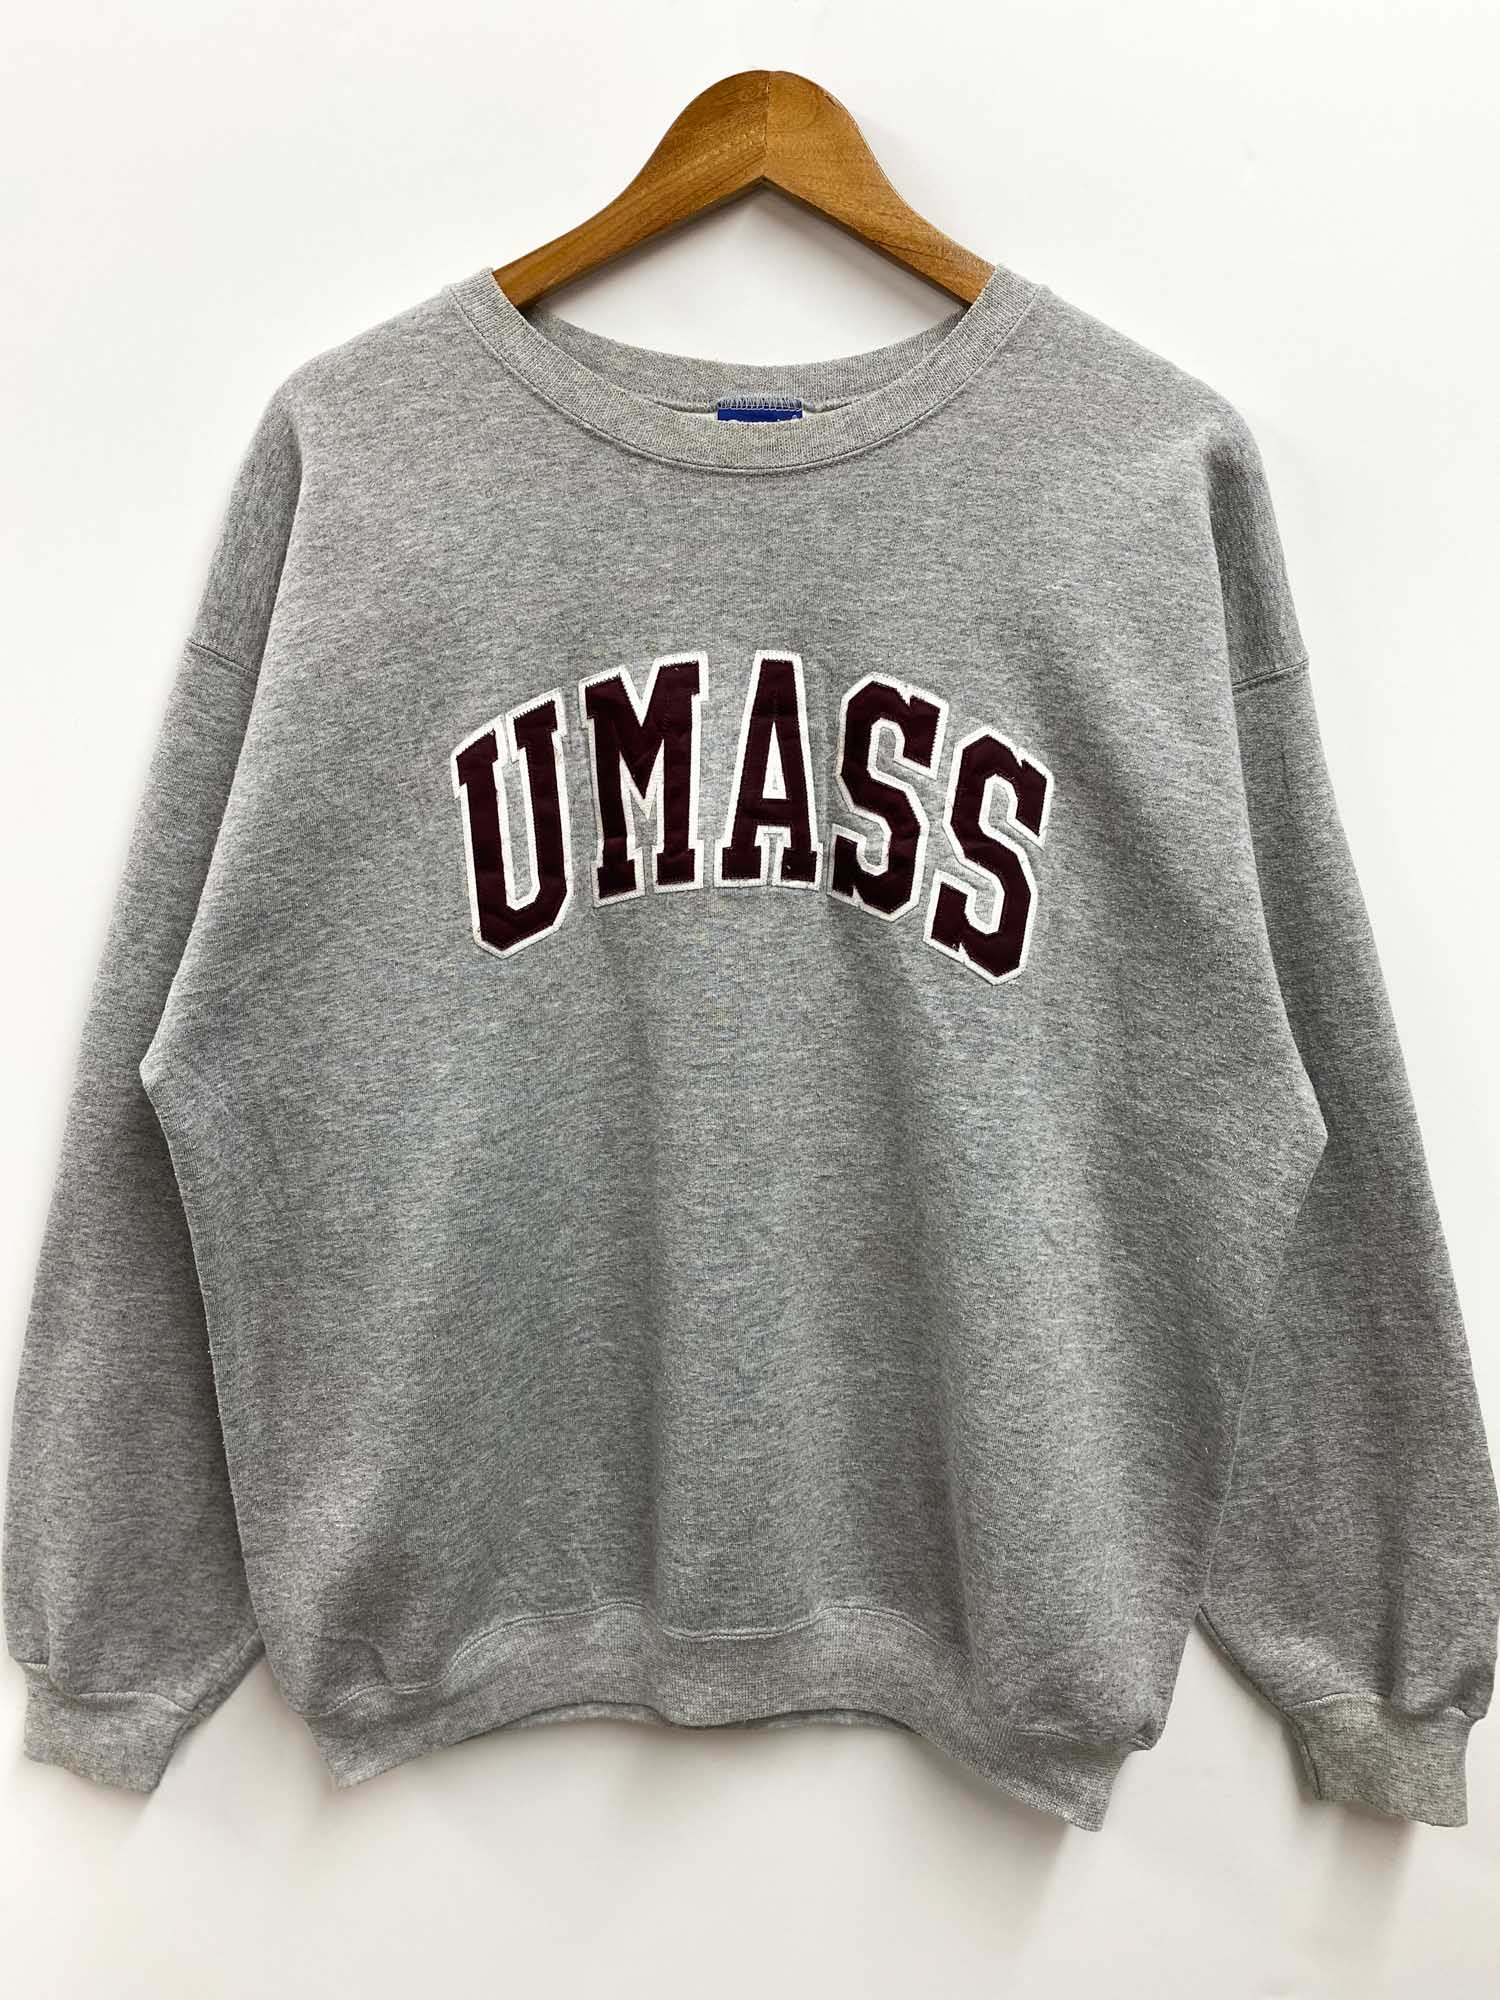 VINTAGE CHAMPION UMASS COLLEGE CREWNECK